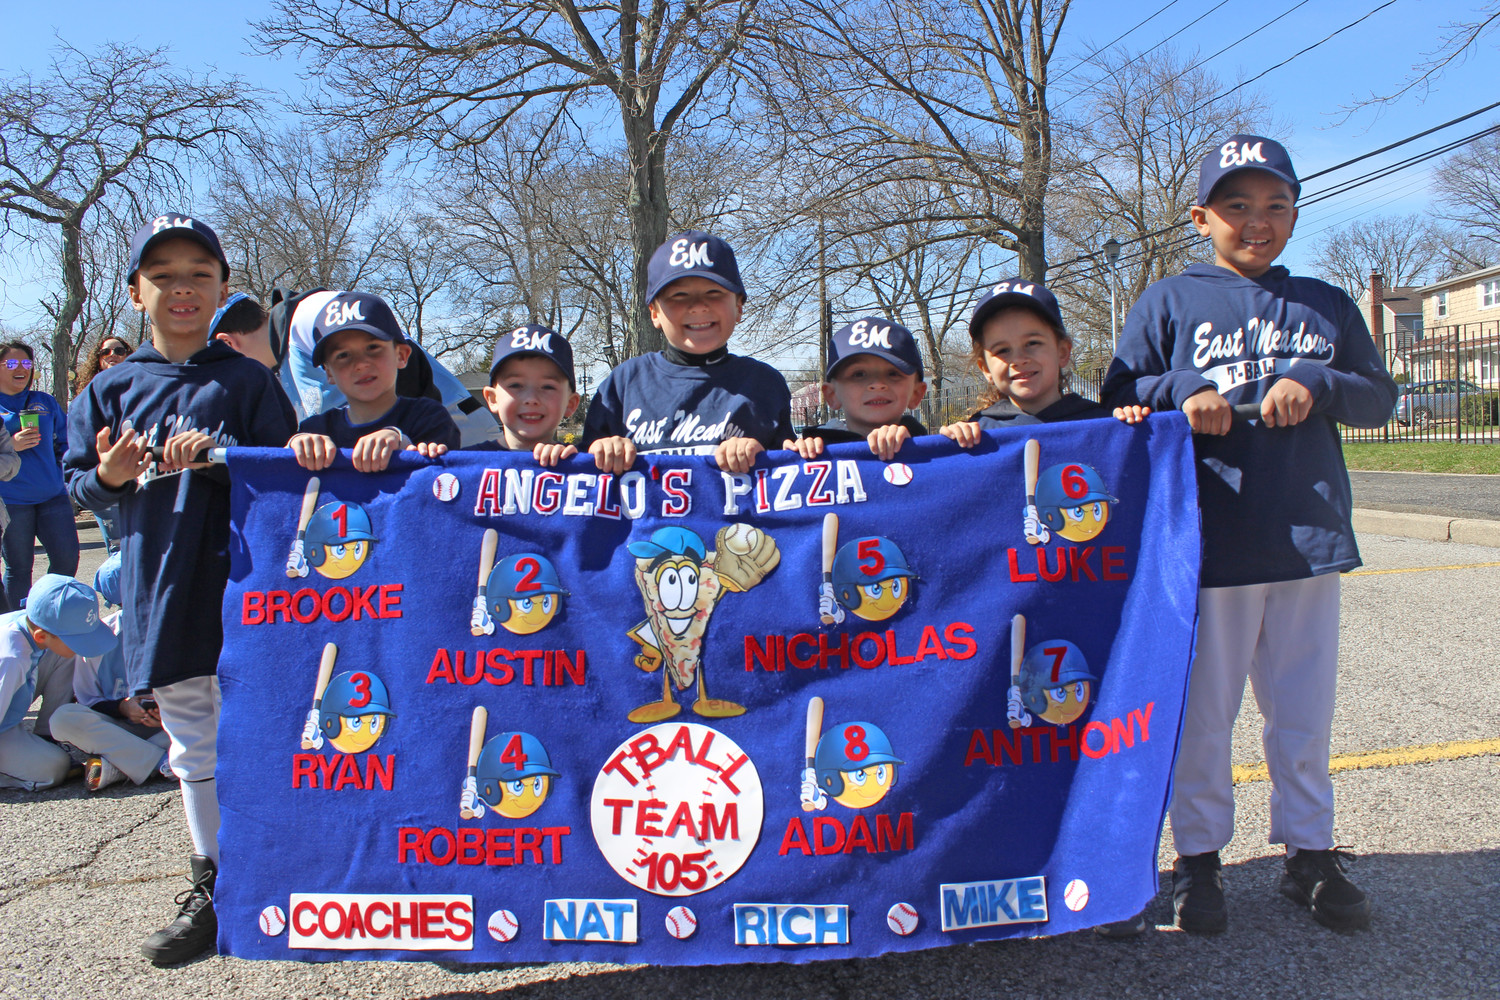 The above athletes marched with their banner sponsored by Angelo's Pizza in East Meadow.